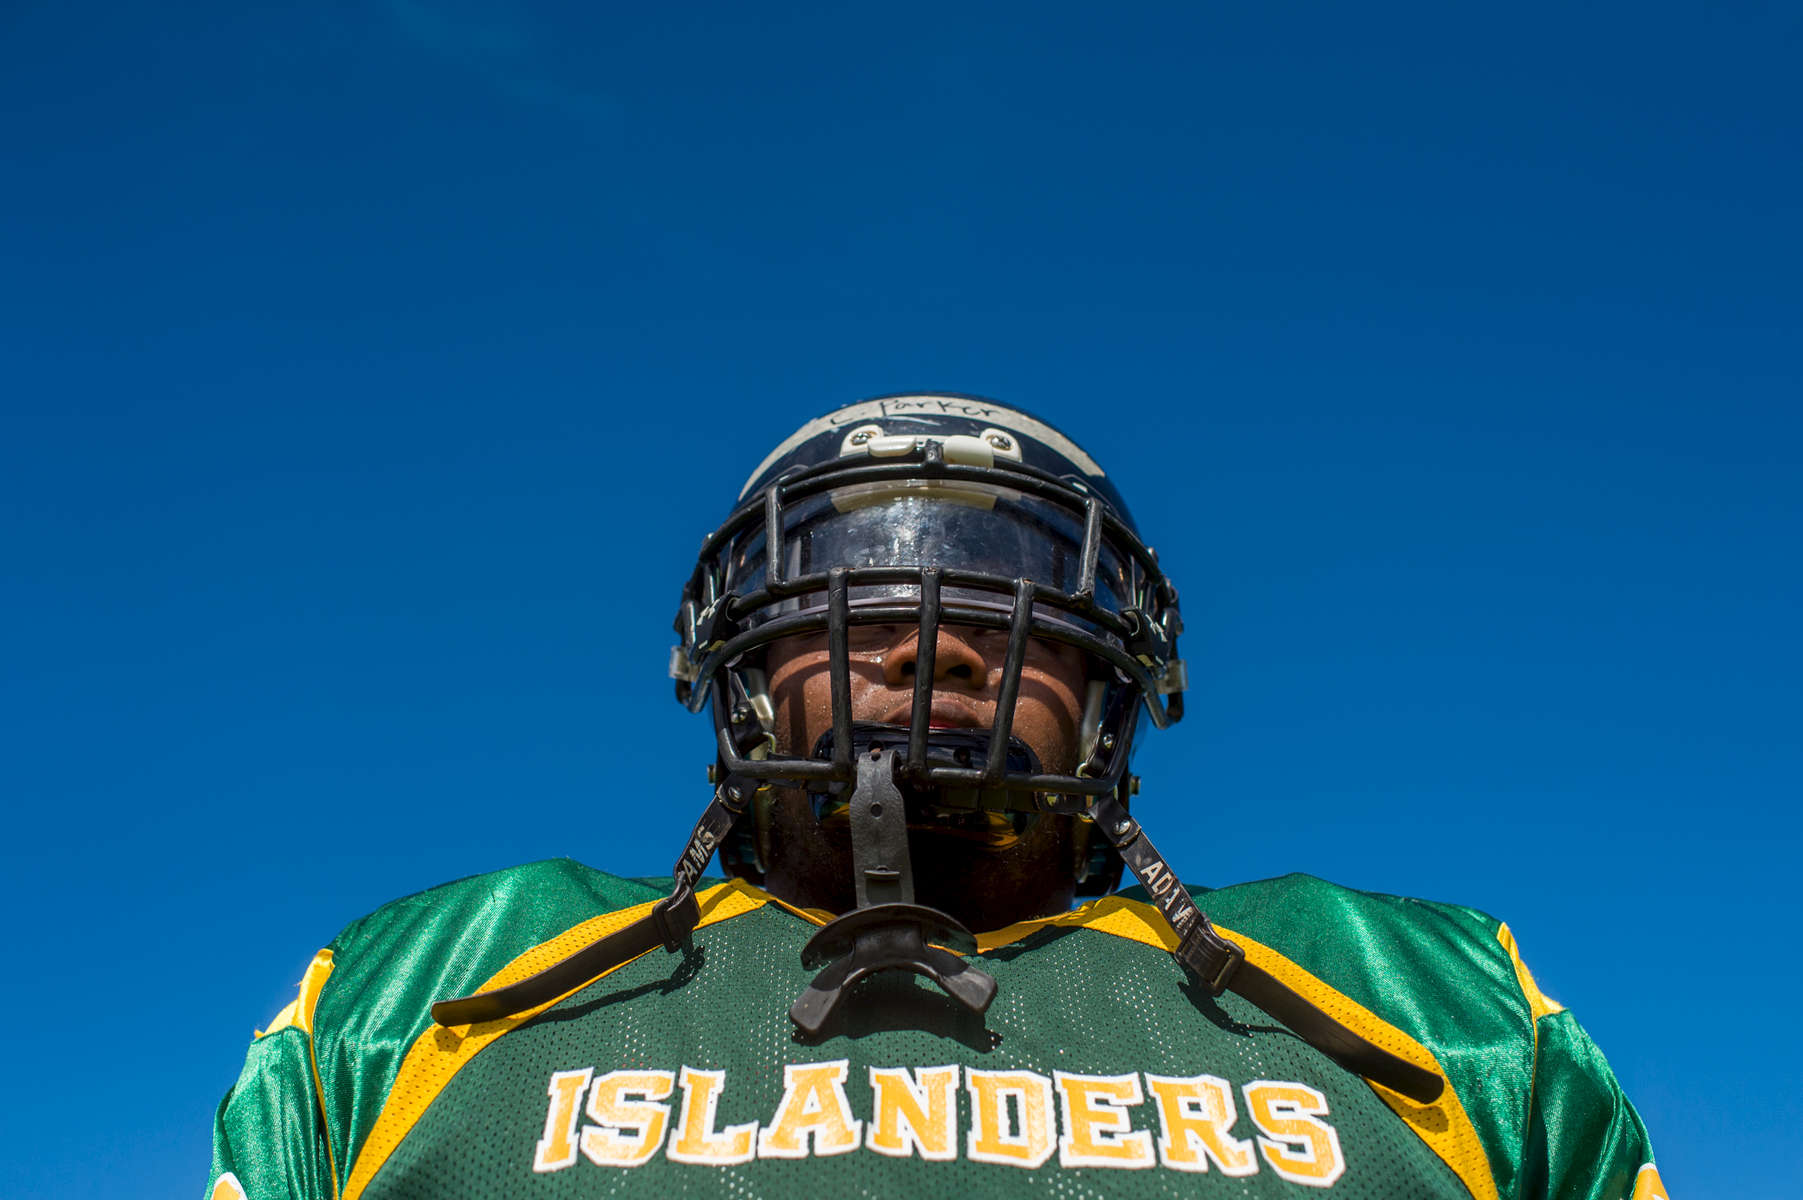 Christopher Parker, 17, is a senior at John F. Kennedy High School in Guam and is a defensive lineman on his school's football team. (Aug 14, 2017)Photo by Nancy Borowick